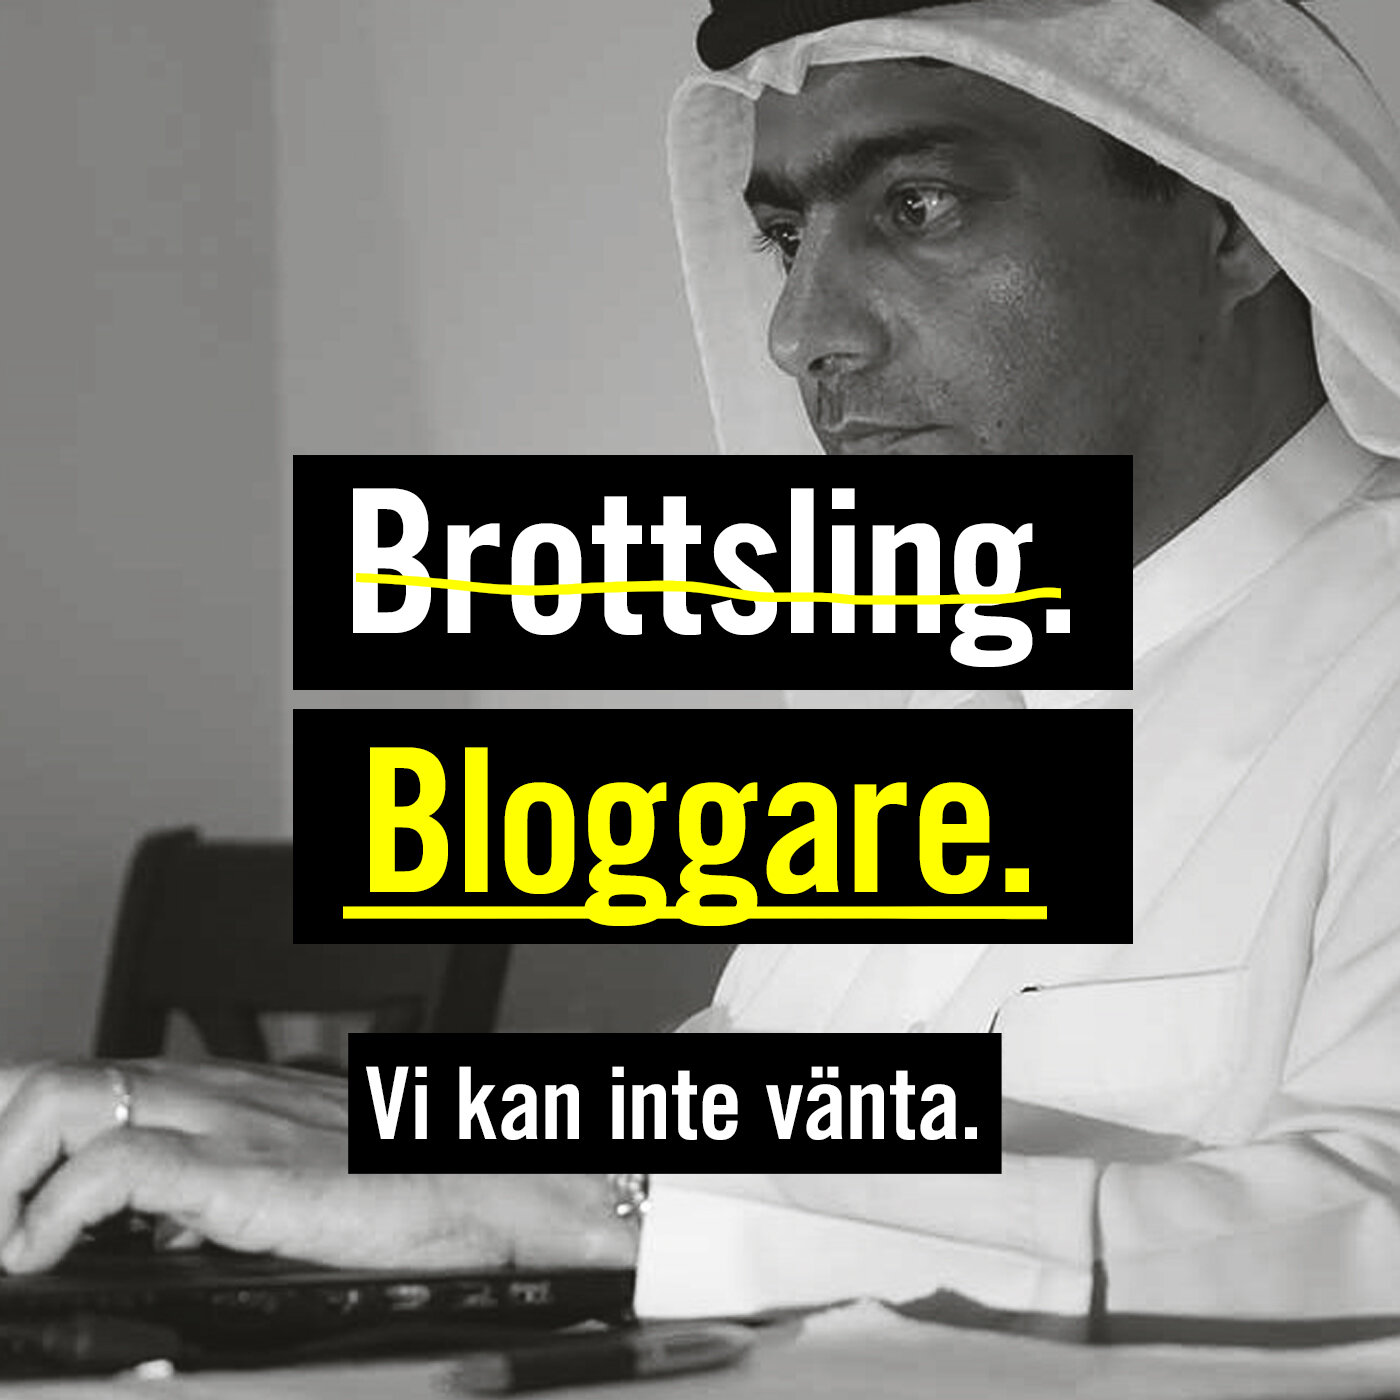 Subject: Release the blogger Ahmed Mansur who is currently in UAE prison for unfair charges.  Criminal   (crossed over)   Blogger We cannot wait.